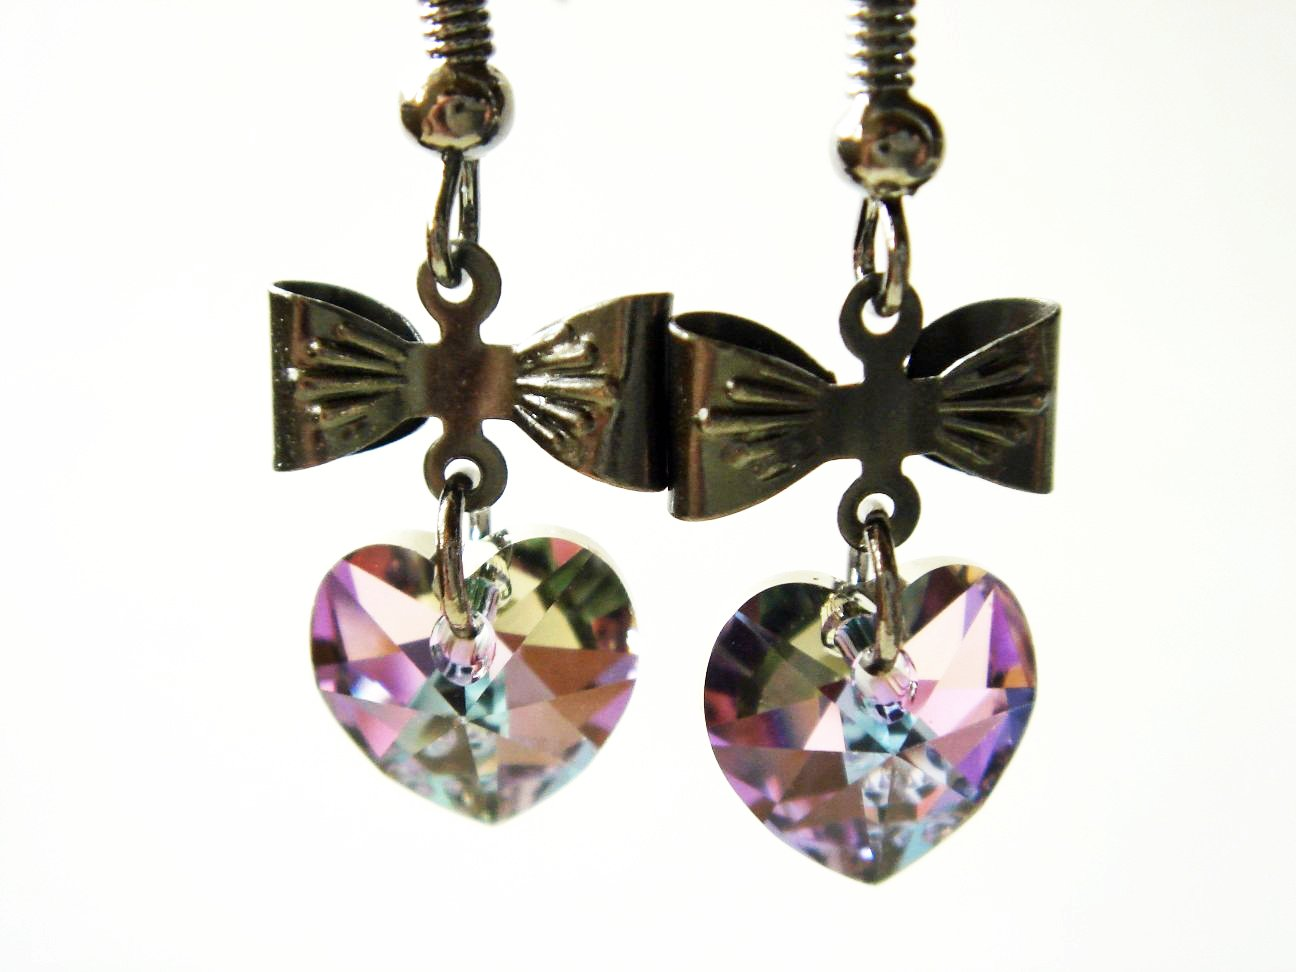 Swarovski Crystal Heart and Bow Earrings by Enchanting Jewels